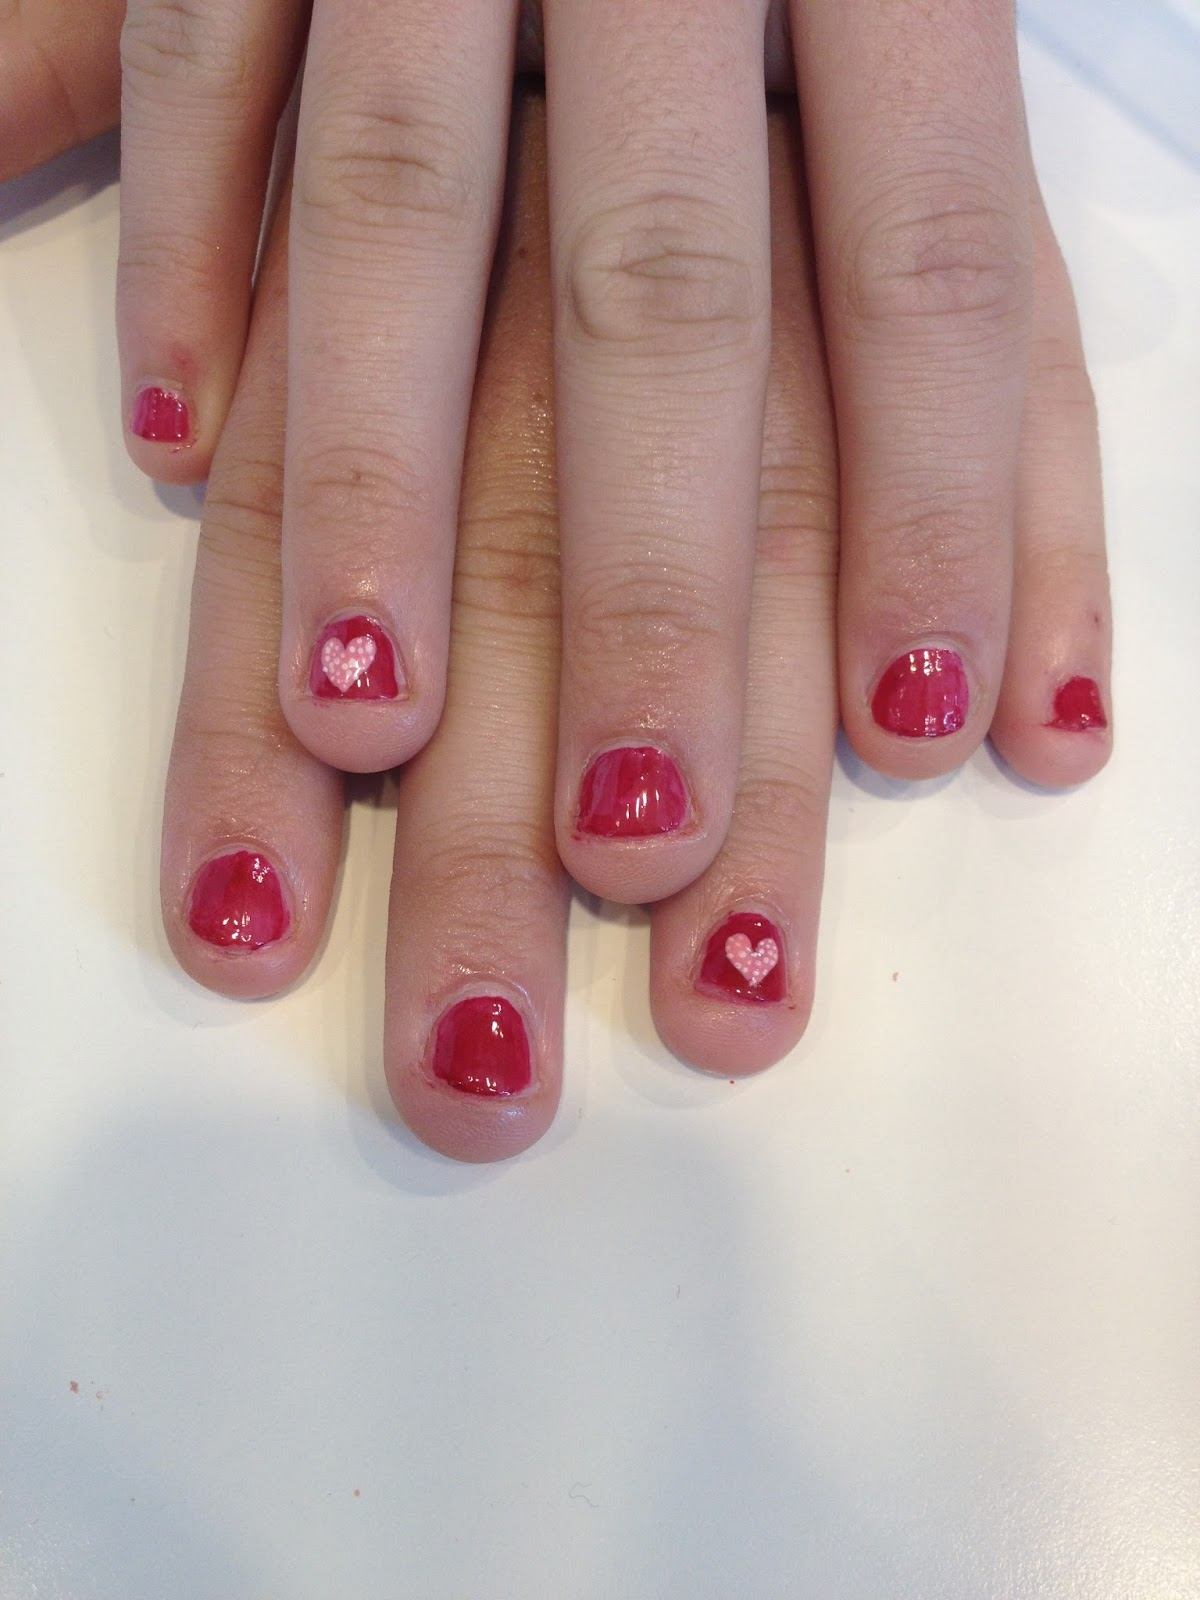 One Nail To Rule Them All: Nails at Fosse Park with Graffiti Nails